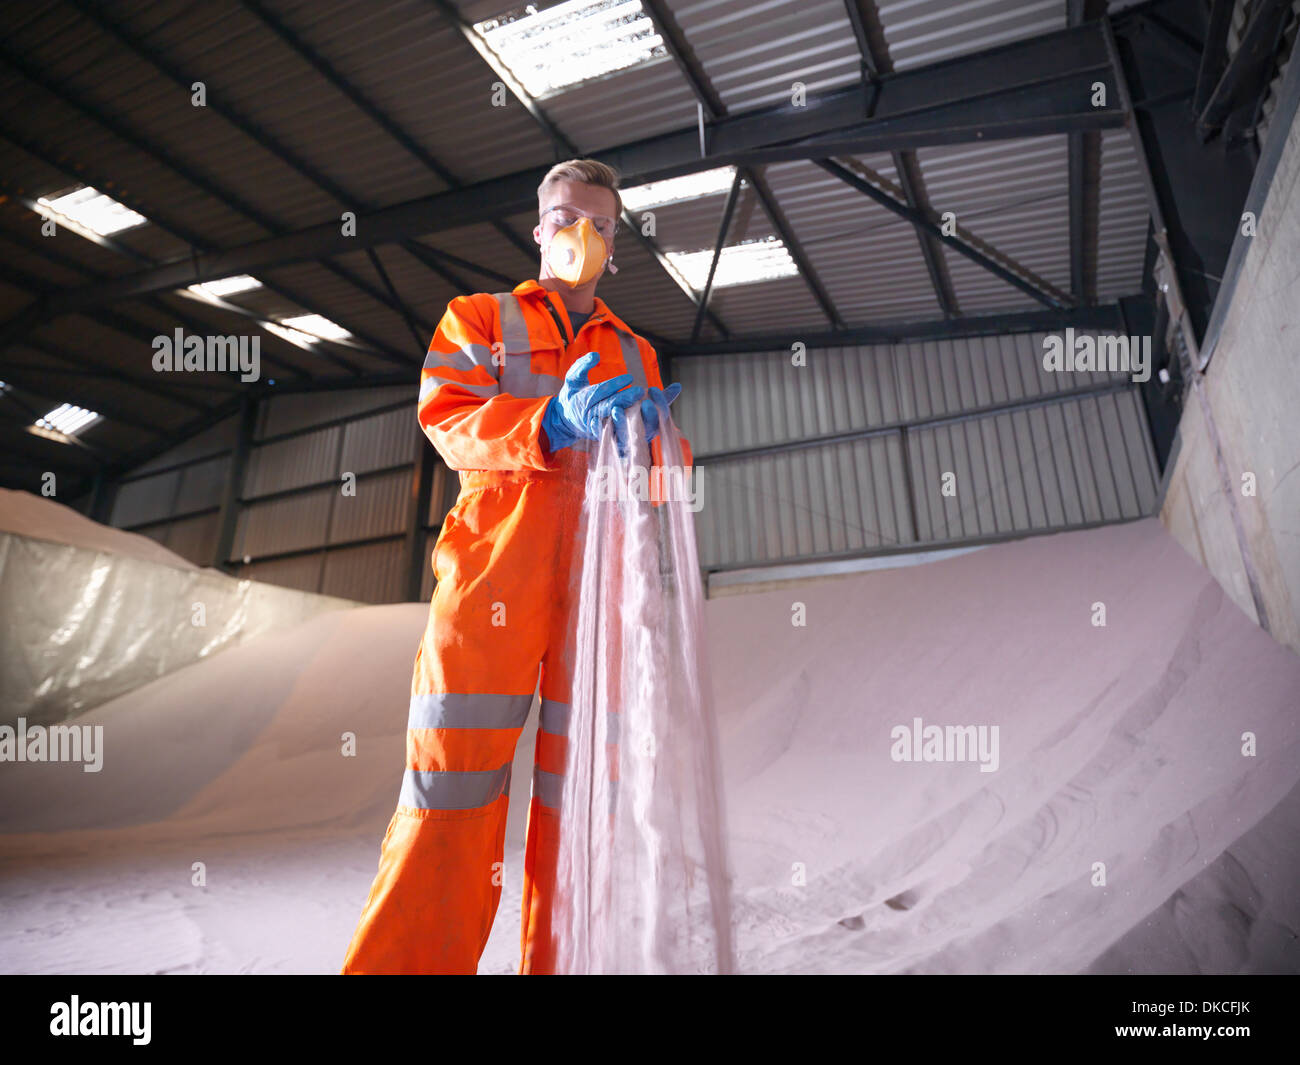 Worker in reflective clothing inspecting zircon sand - Stock Image